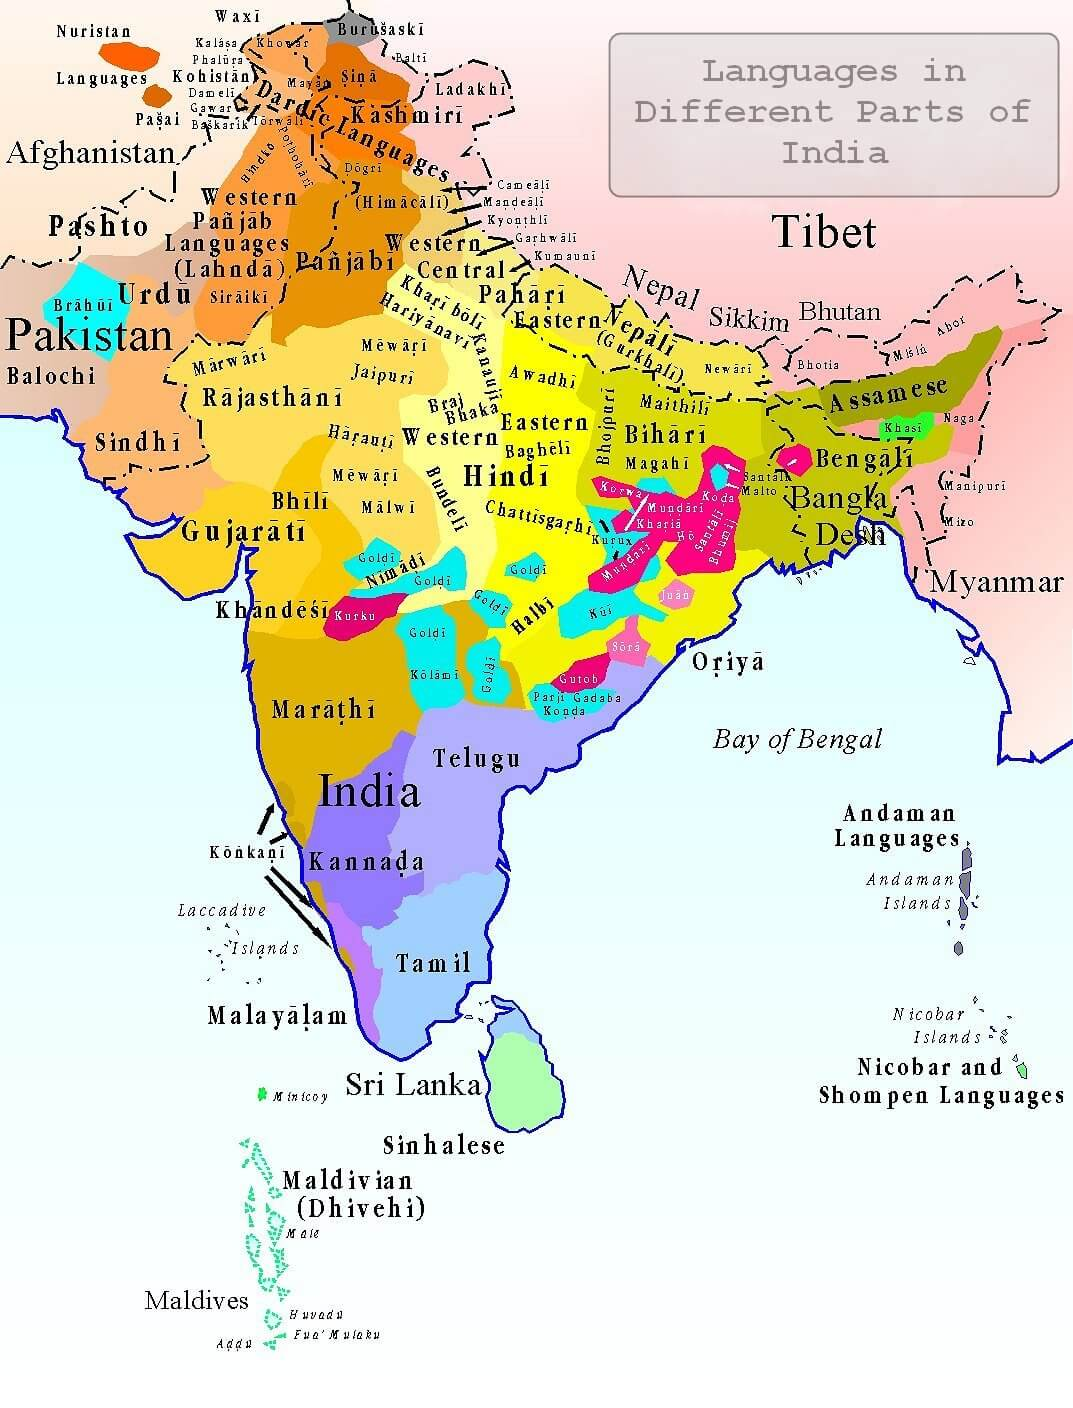 Languages in Different parts of India